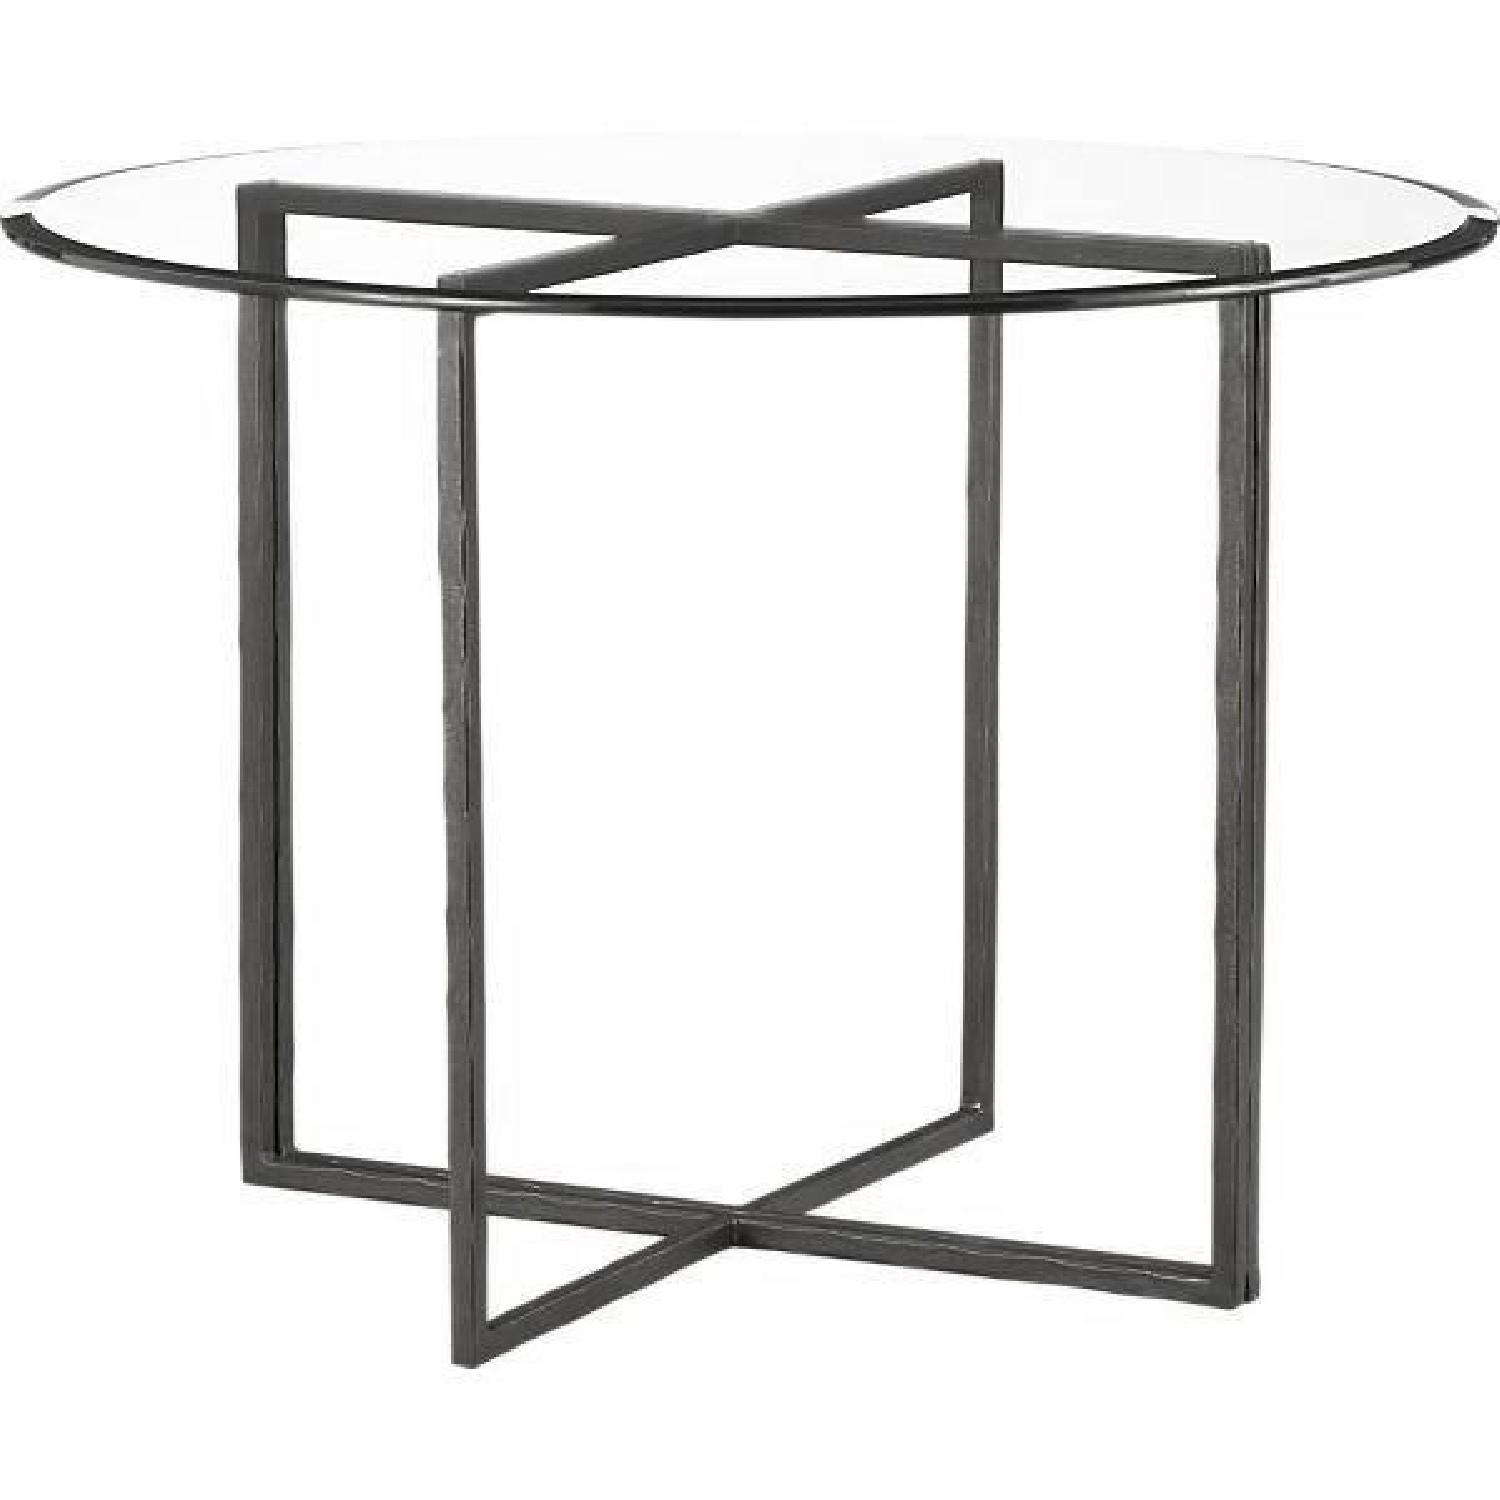 Crate & Barrel Glass Dining Table w/ 4 Chairs - image-3